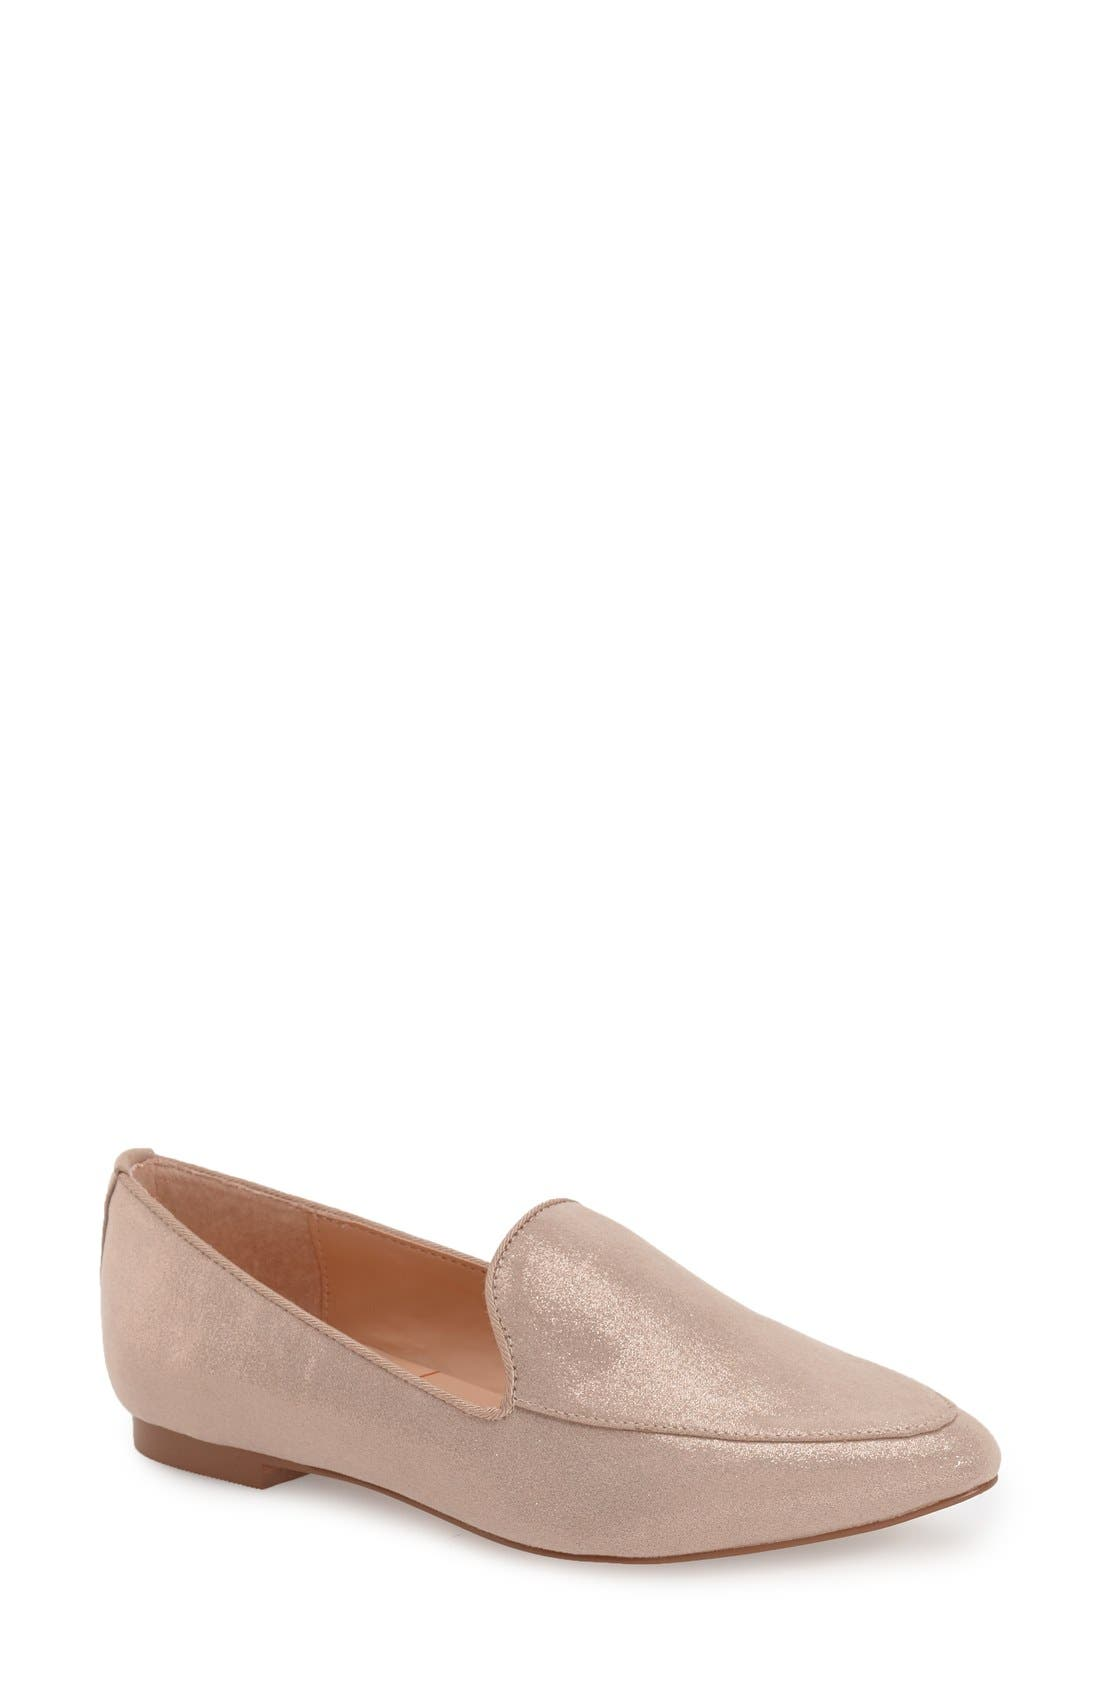 Alternate Image 1 Selected - Sole Society 'Sean' Pointy Toe Loafer (Women)